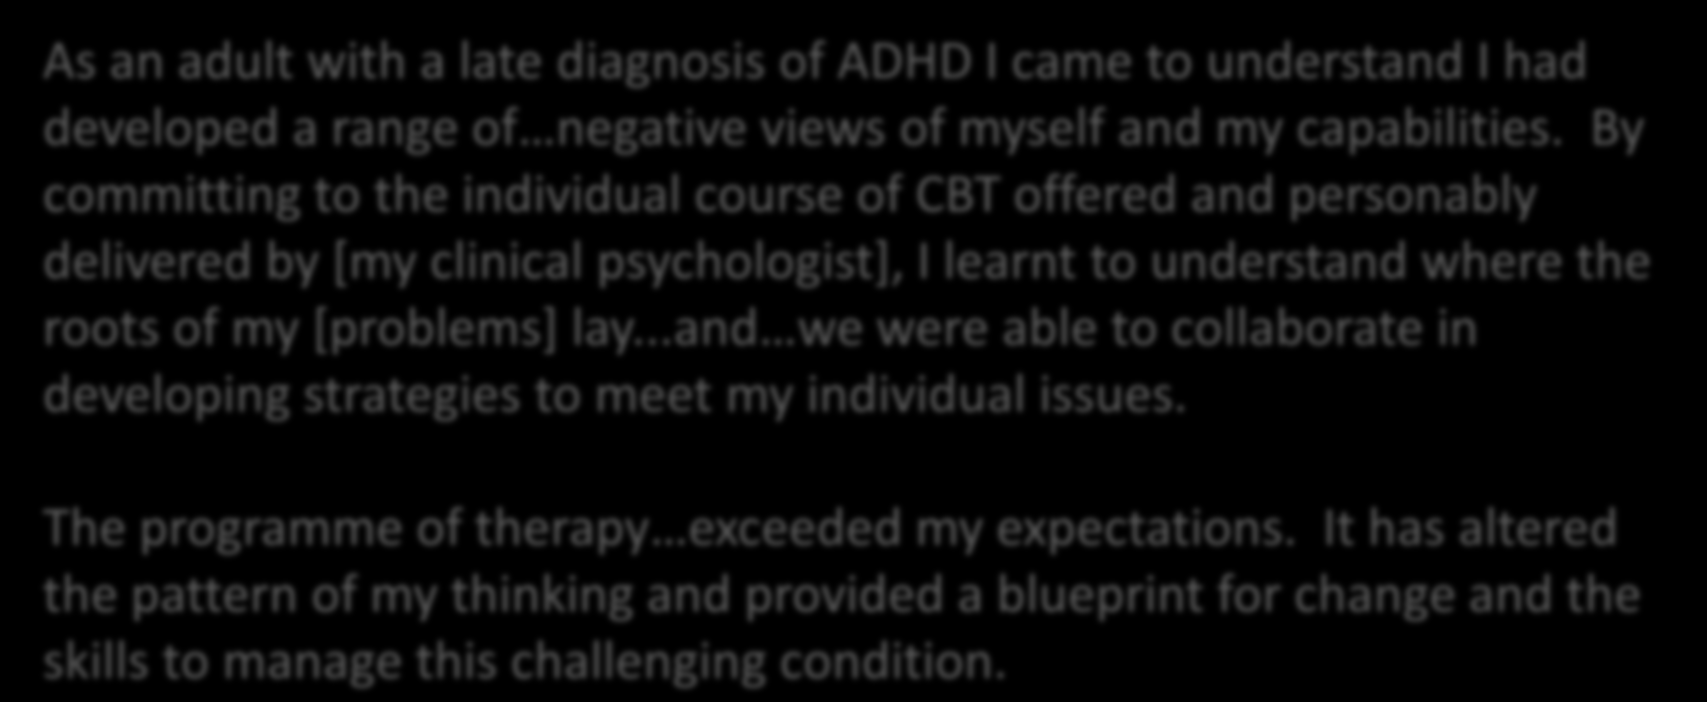 Feedback As an adult with a late diagnosis of ADHD I came to understand I had developed a range of negative views of myself and my capabilities.